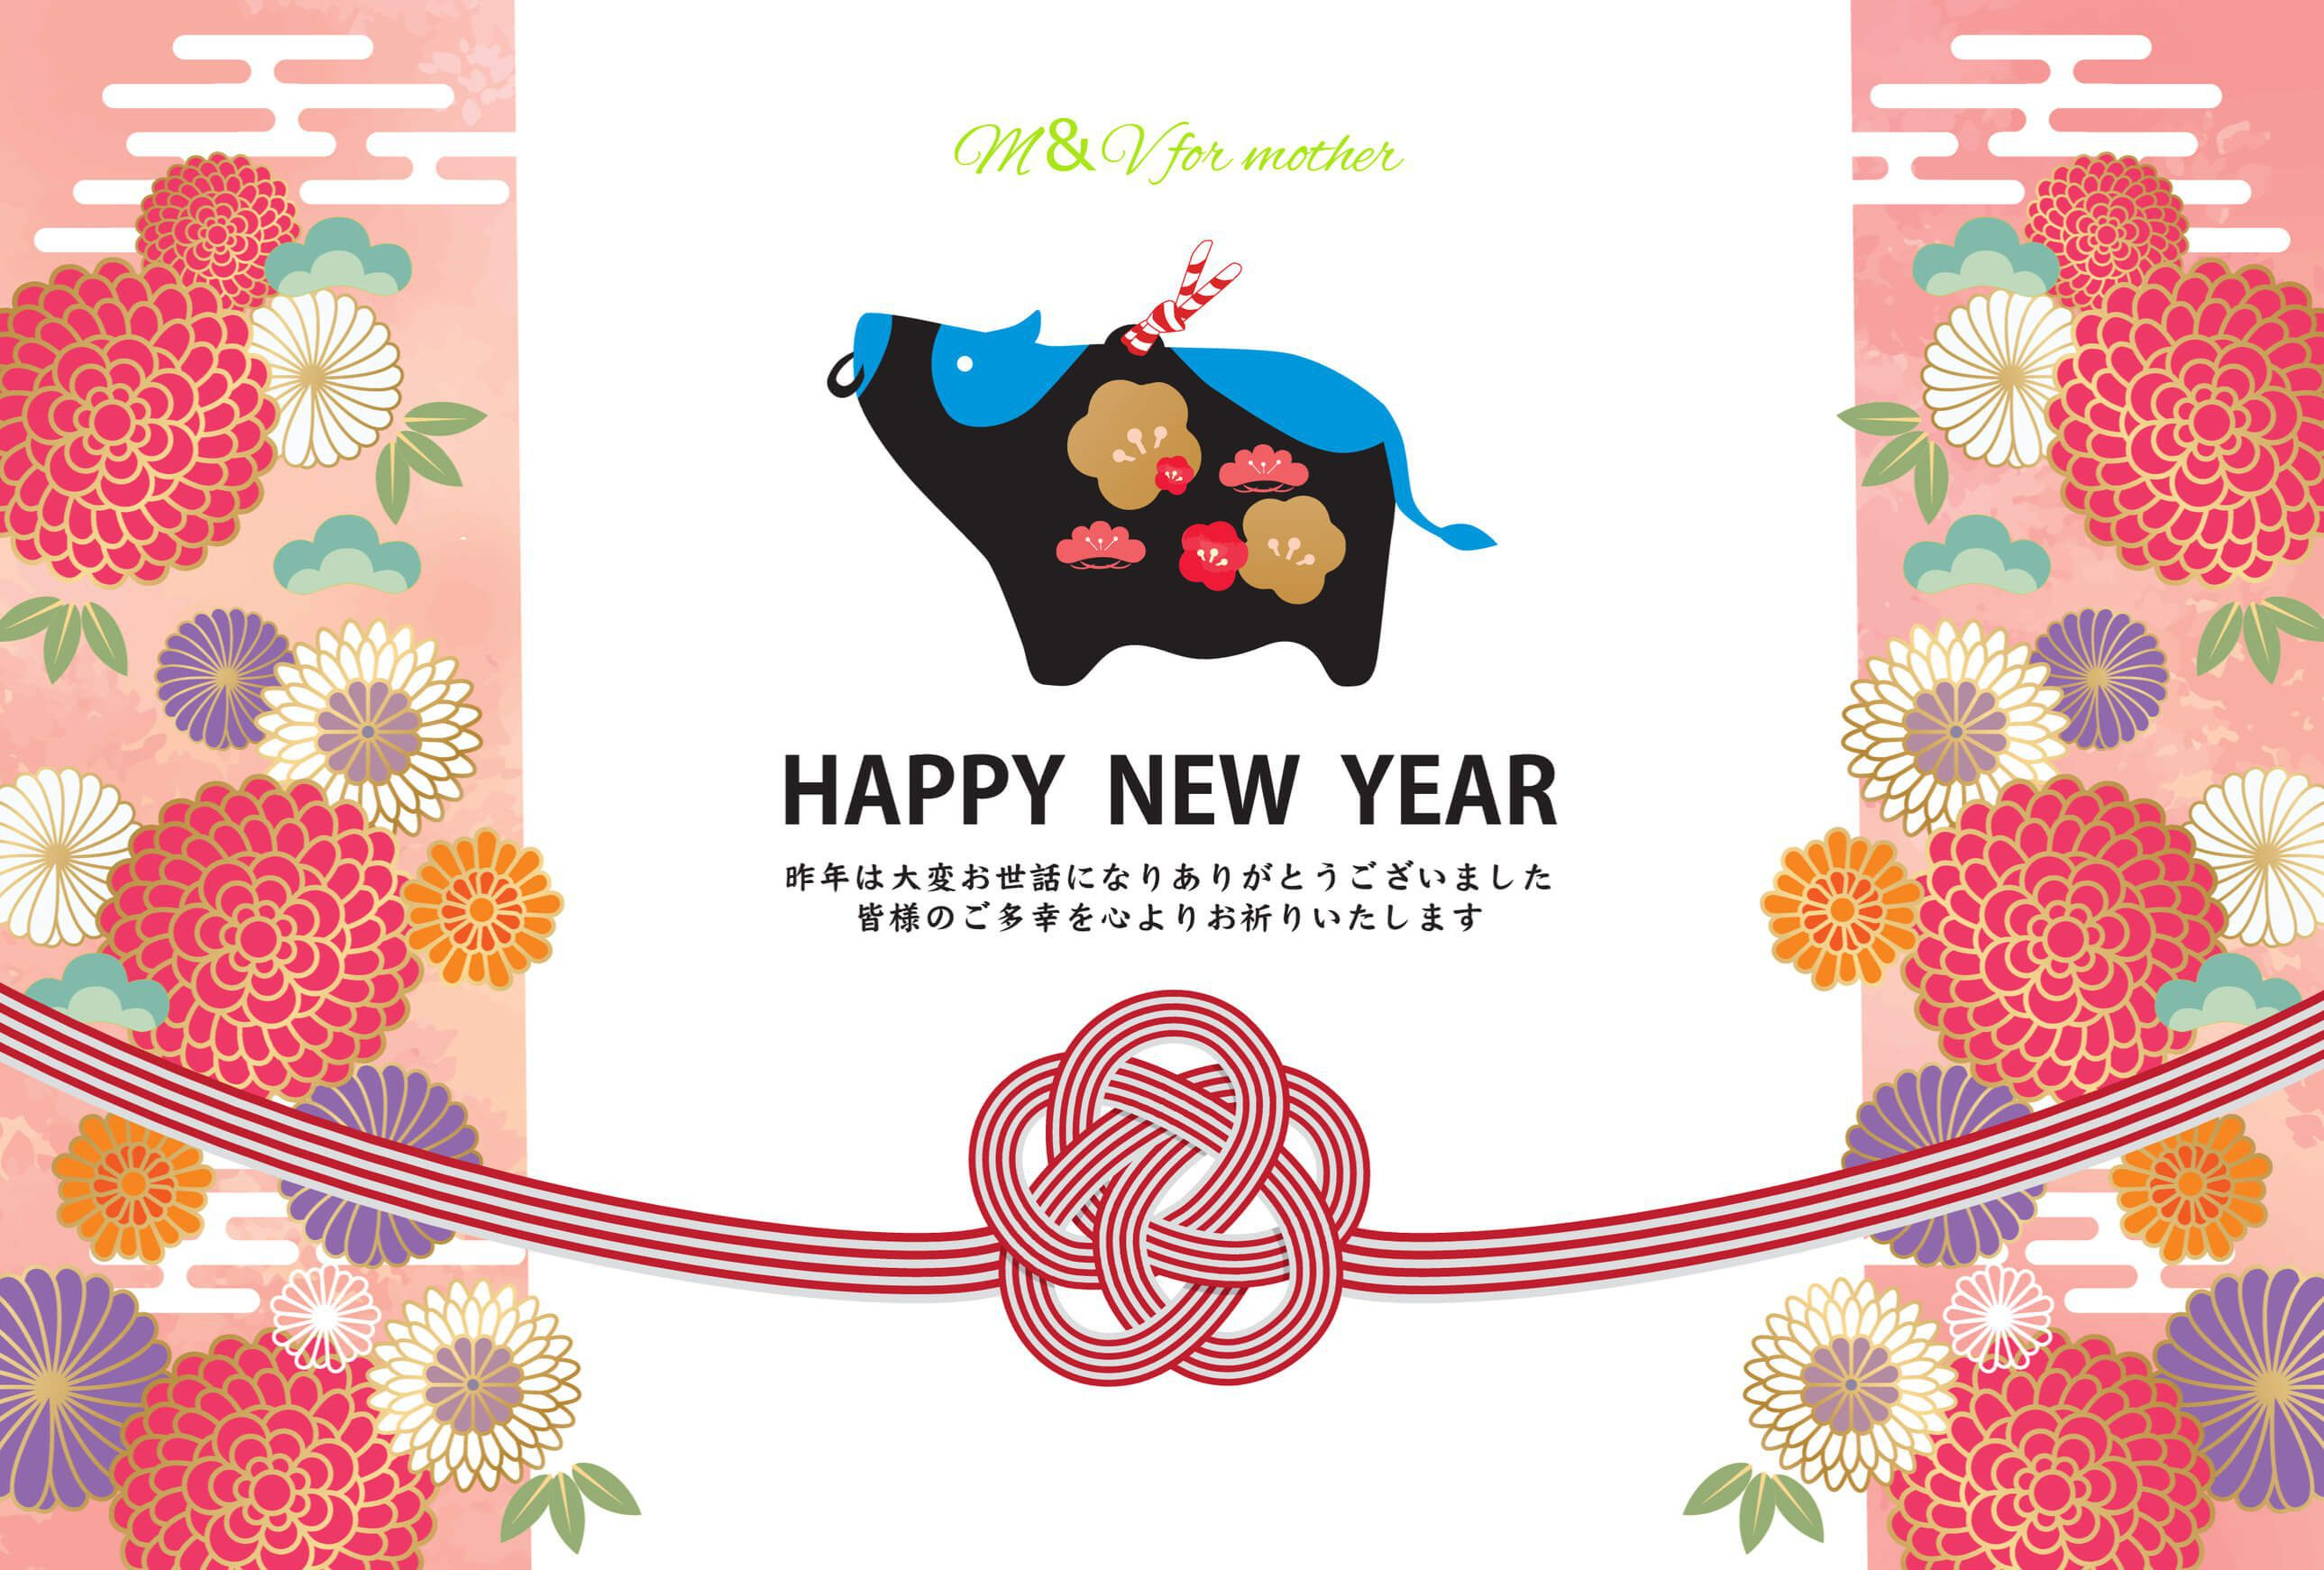 shutterstock_new year | 結婚式の母親ドレス M&V for mother